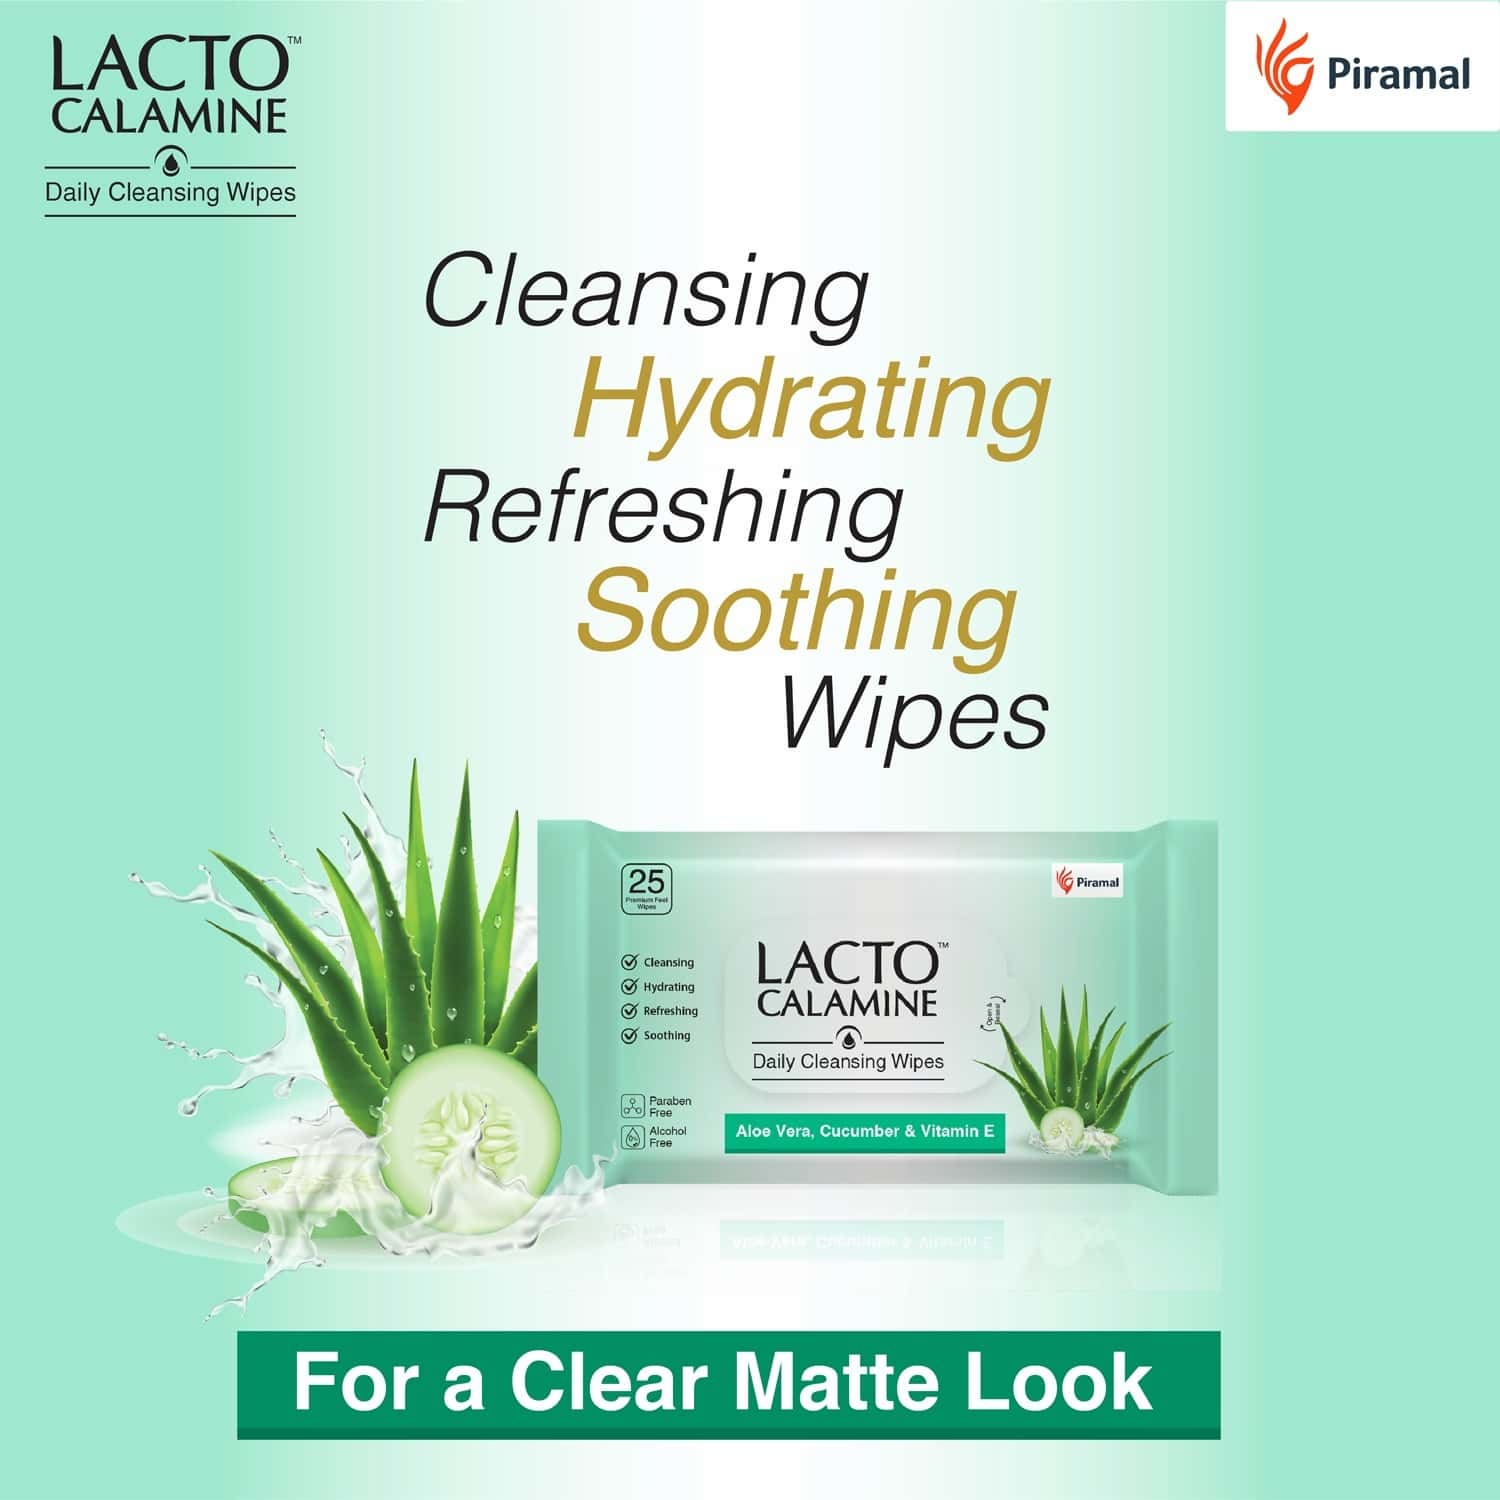 Lacto Calamine Daily Cleansing Face Wipes With Aloe Vera Cucumber And Vitamin E - 25 Wipes